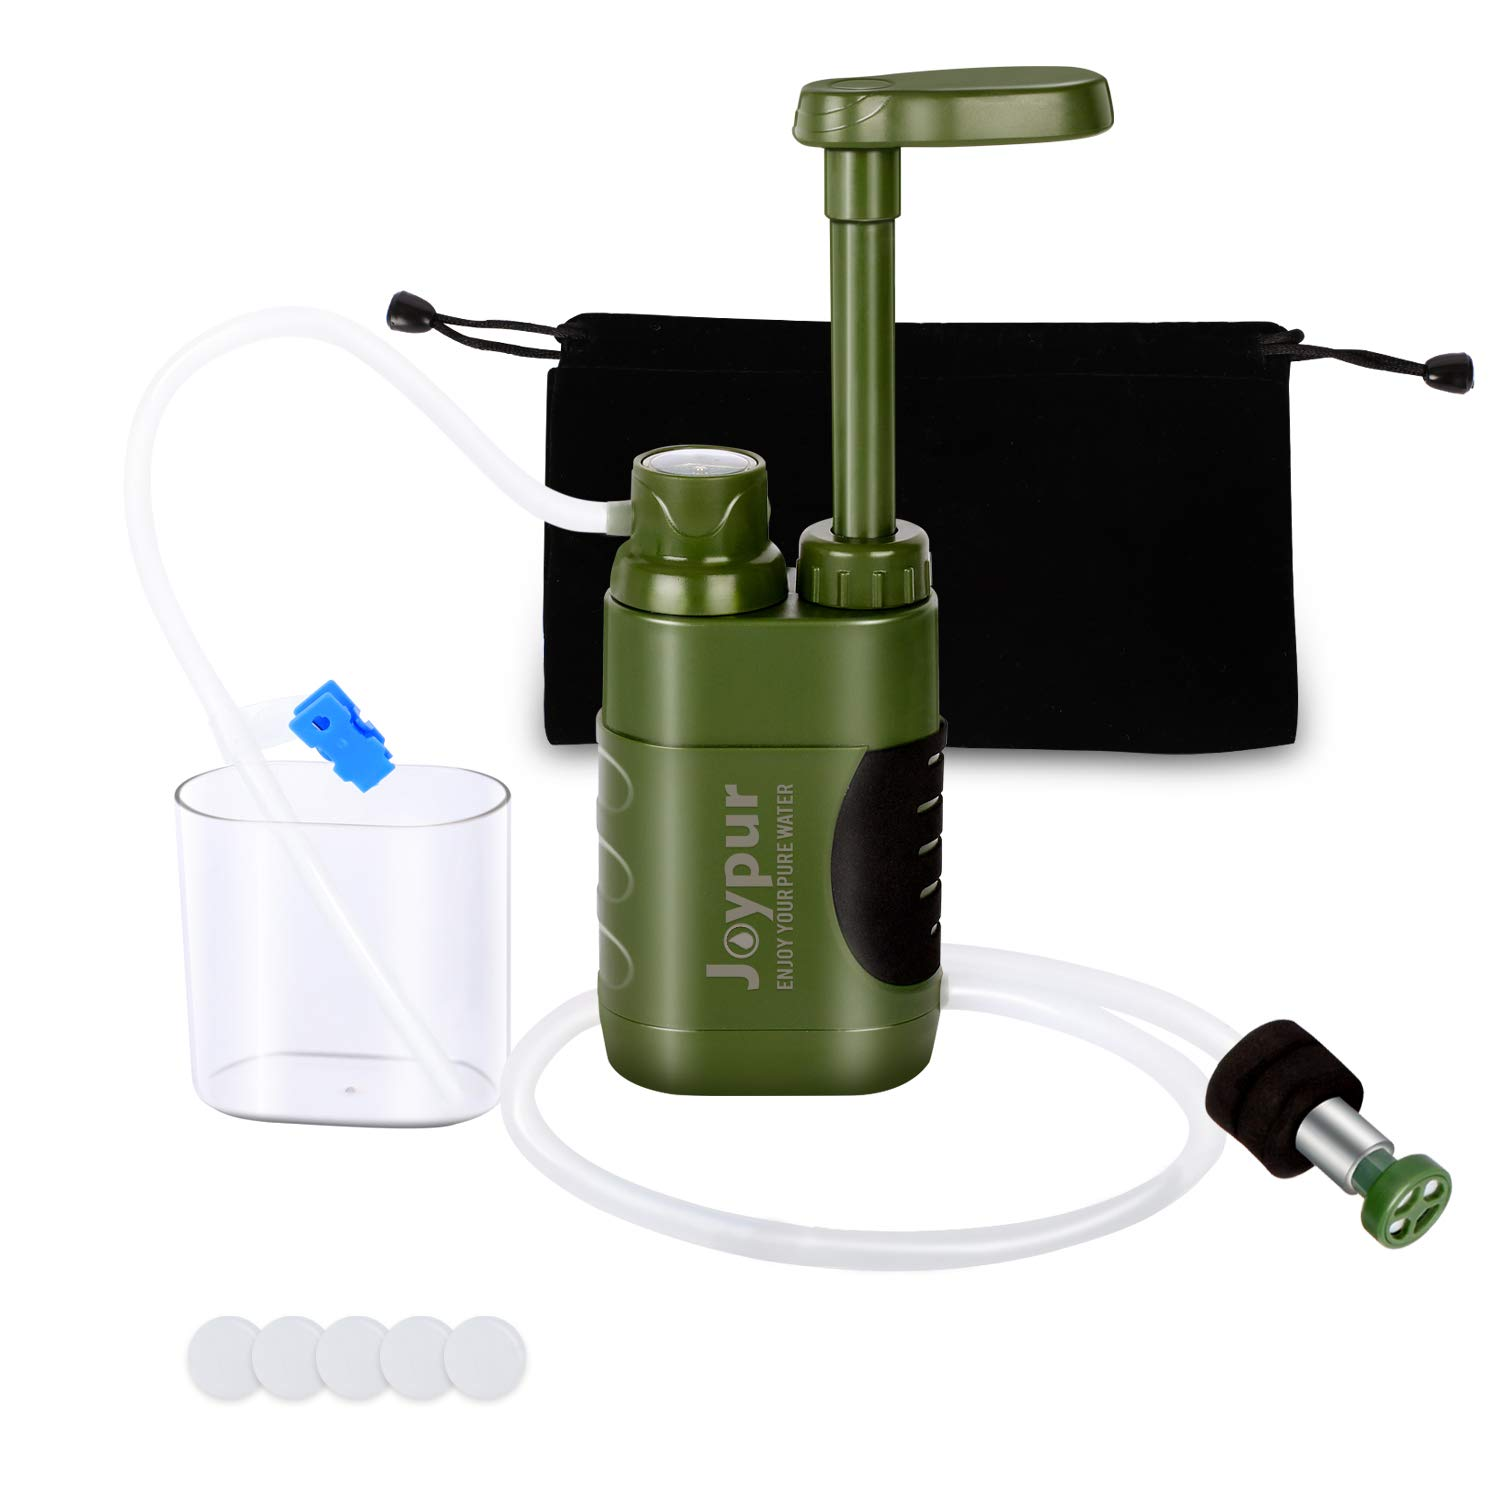 joypur Portable Outdoor Water Purifier Camping 0.01 Micron Emergency Backpacking Water Filter for Hiking with 3-Stage Filter Pump by joypur